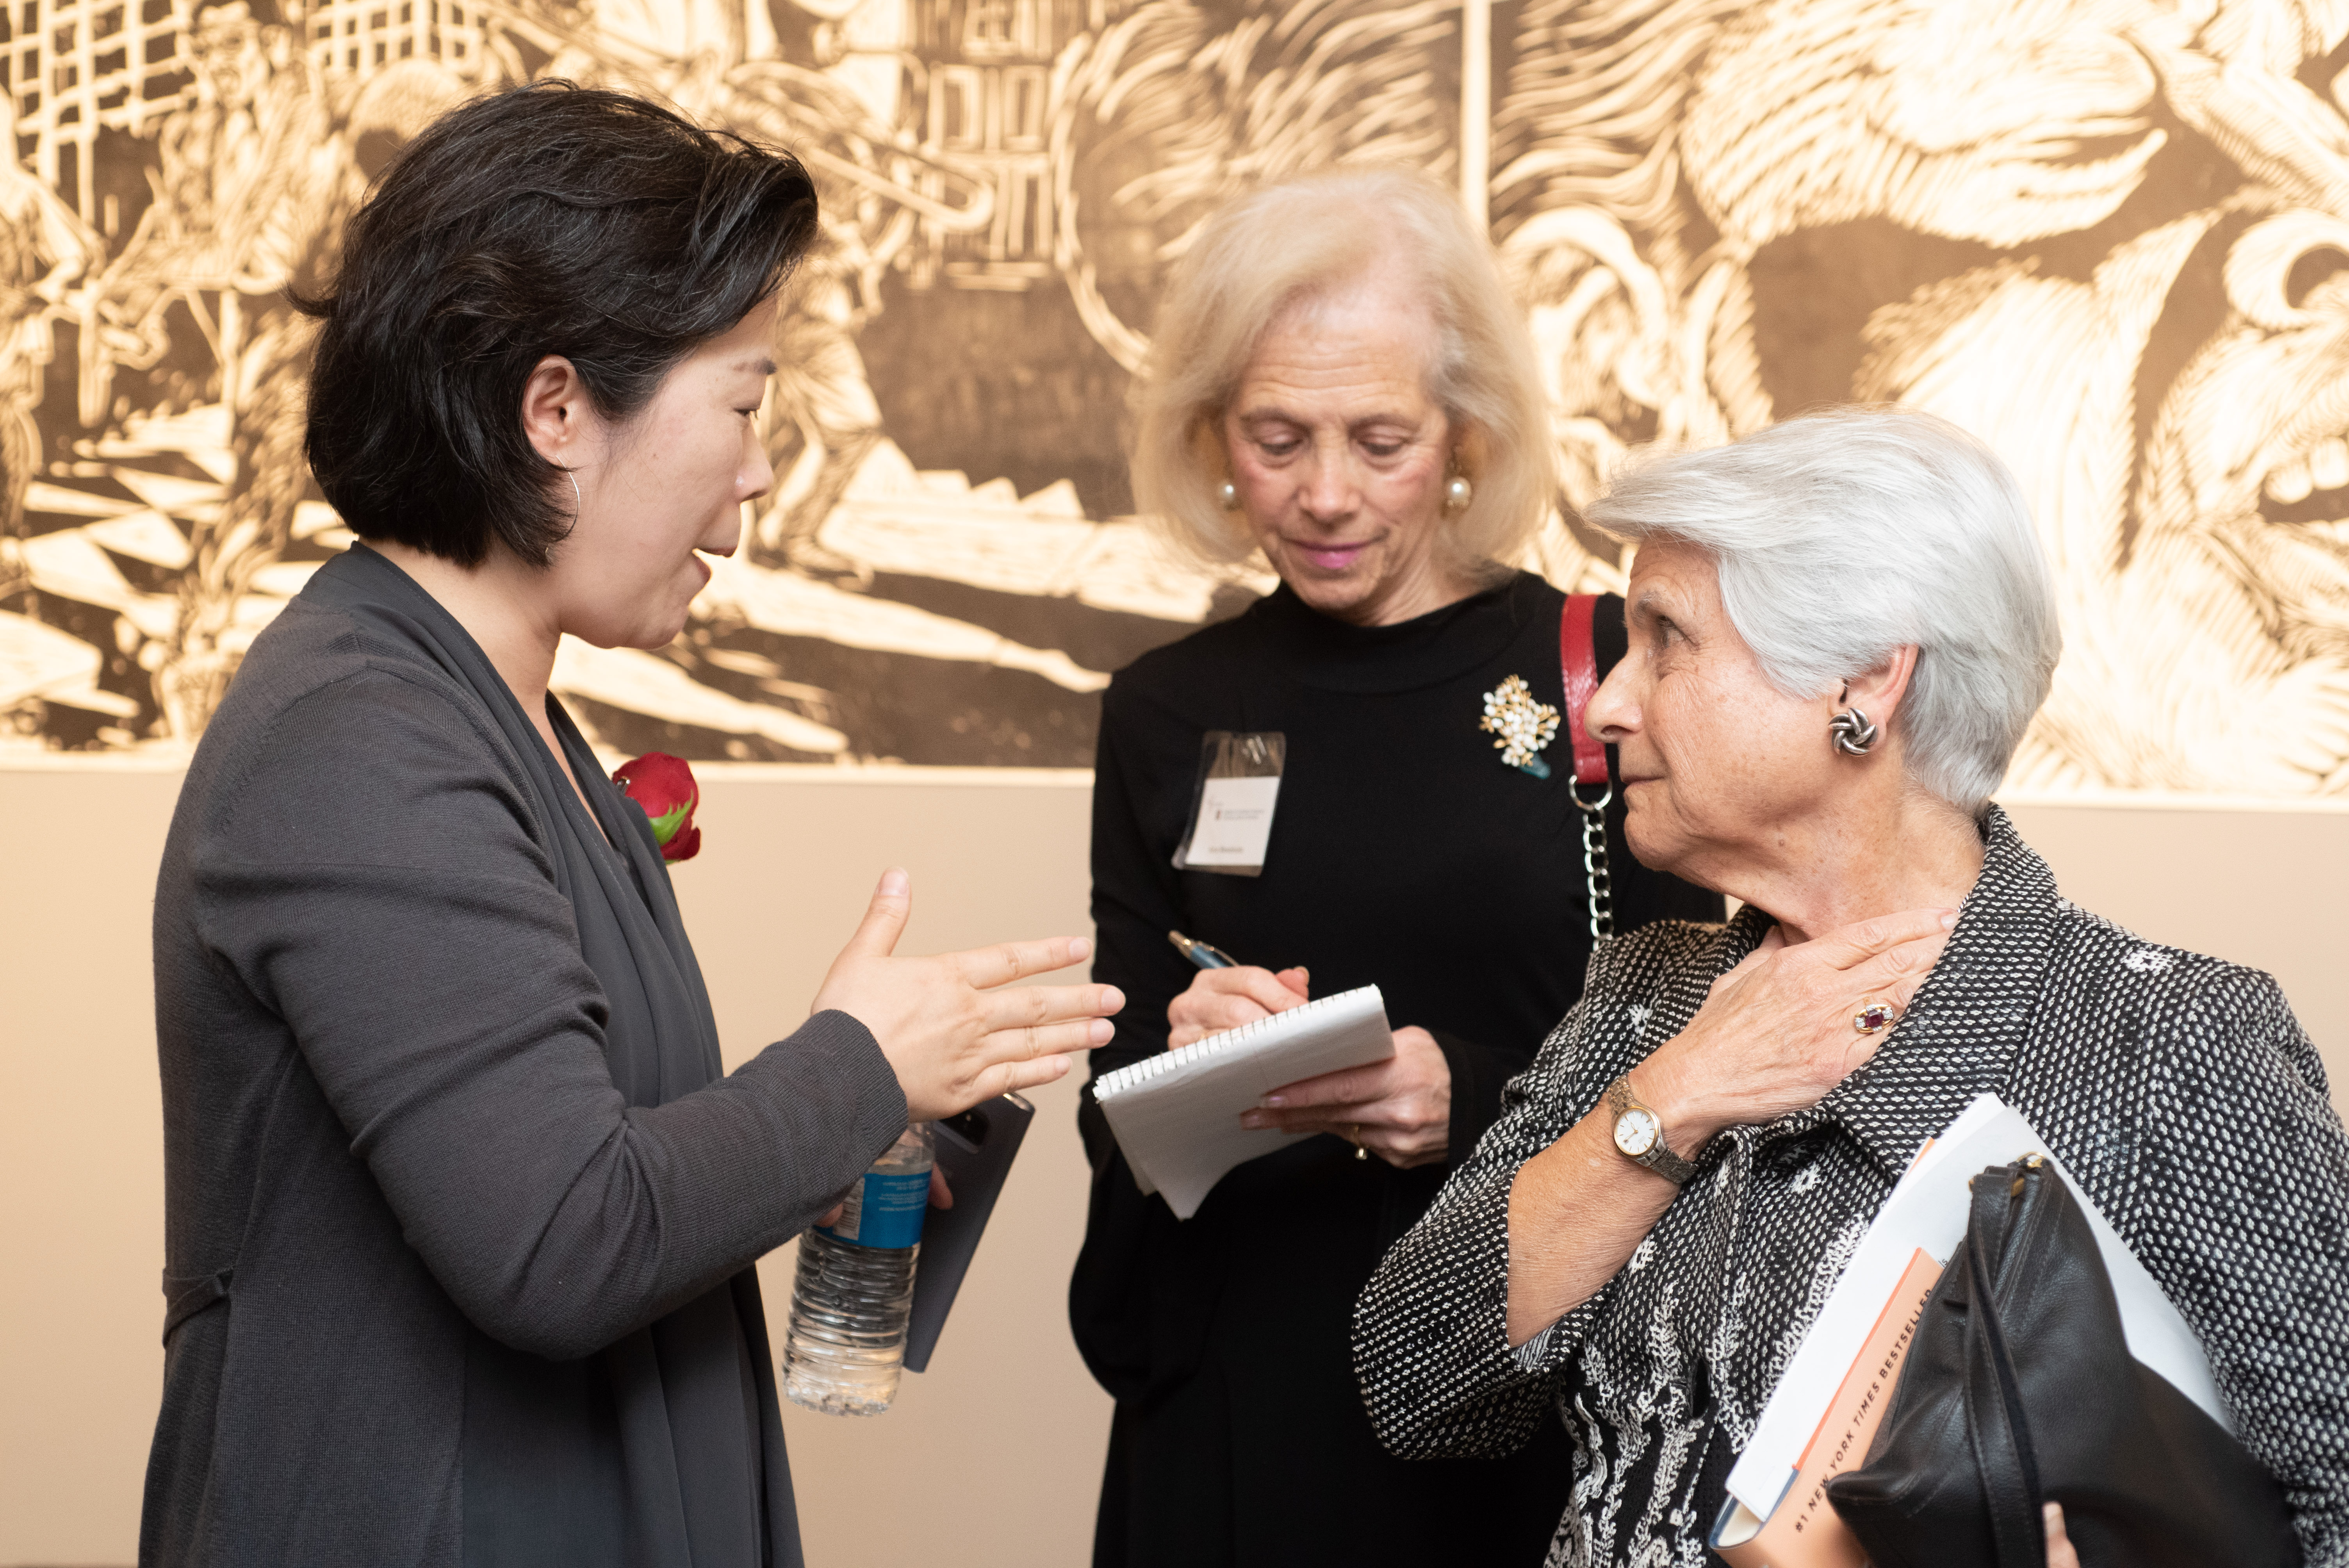 Patrons talking at museum event